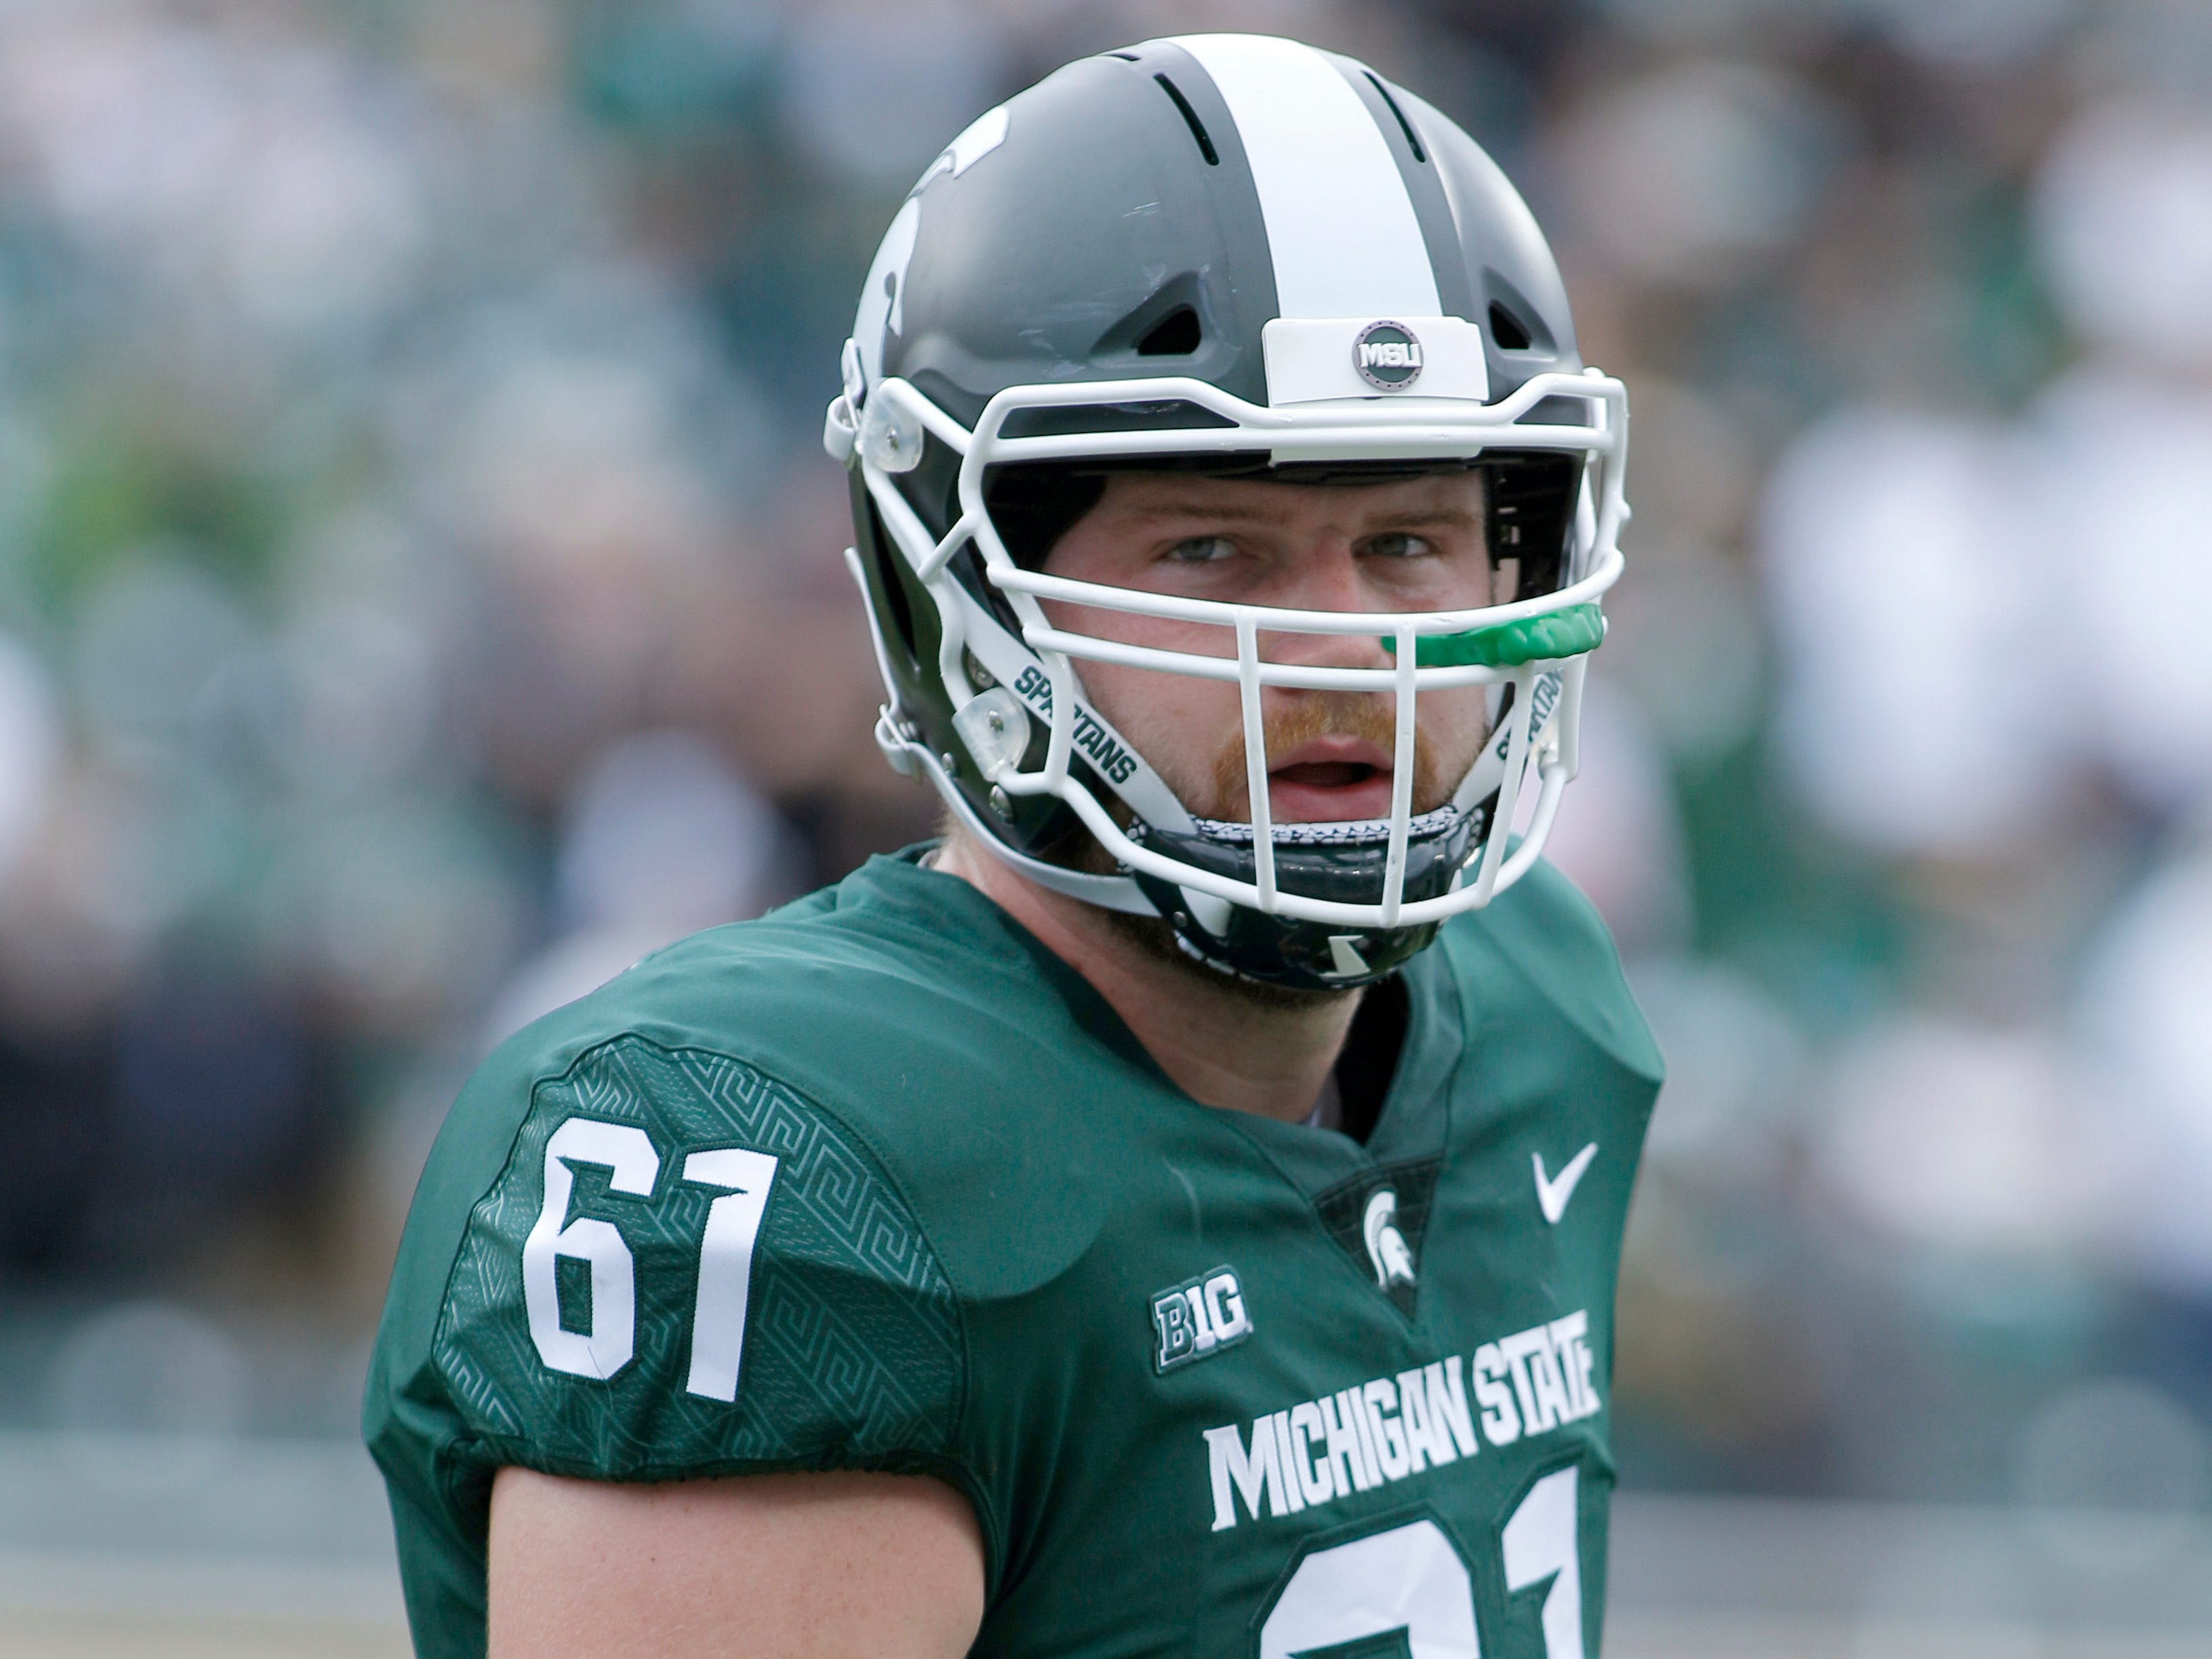 LEFT TACKLE: Cole Chewins – His junior season was hampered by an injury that limited Chewins to 74 snaps in the first five games. He started the final seven games, but will no doubt be pushed this spring by a handful of young players.